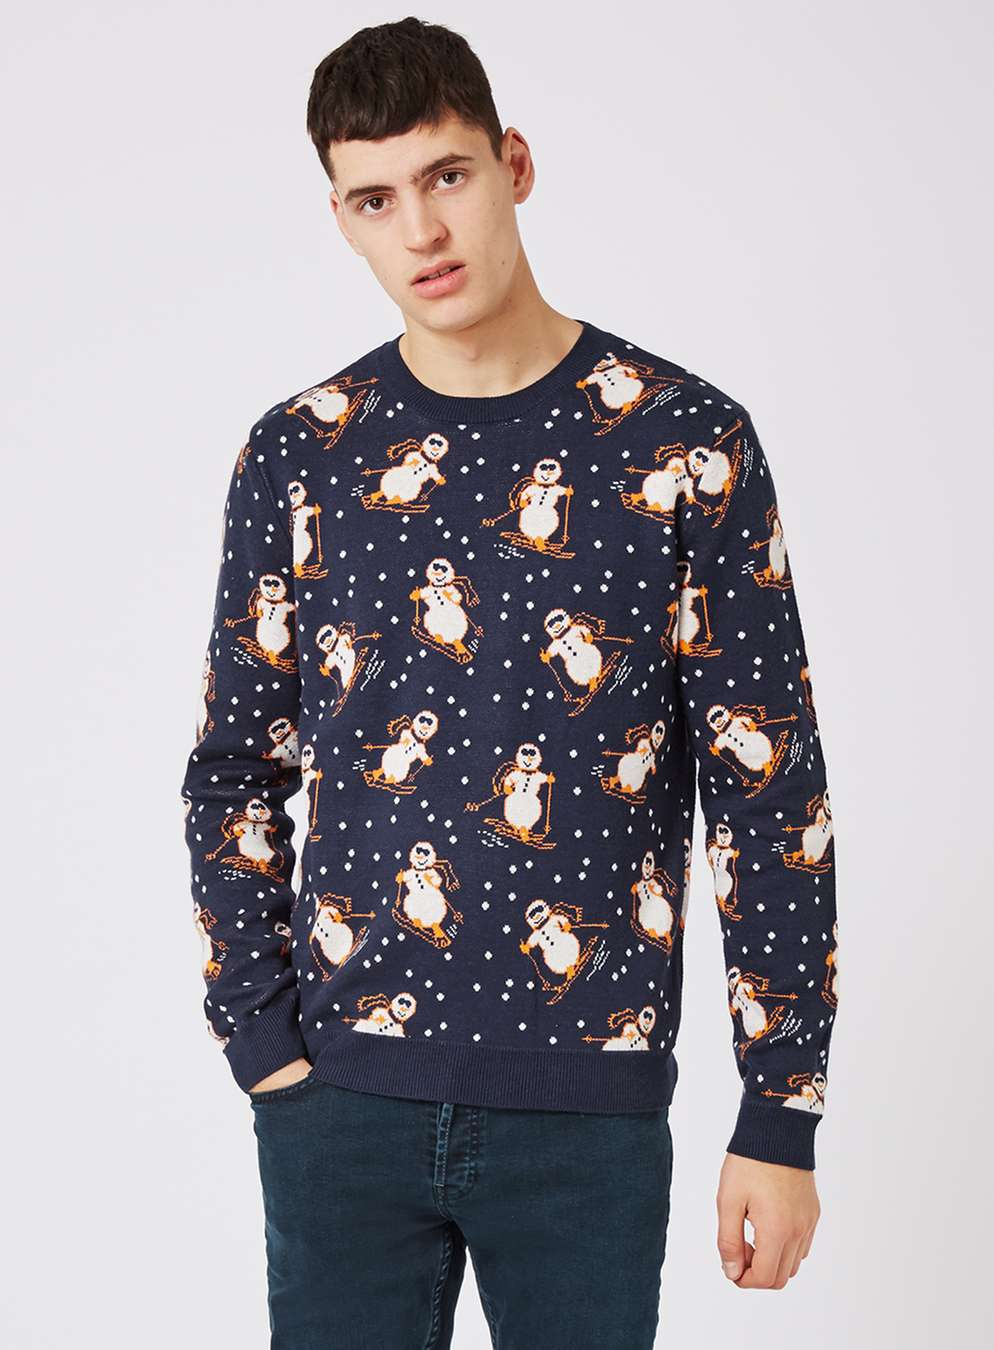 topman-navy-retro-snowman-christmas-jumper